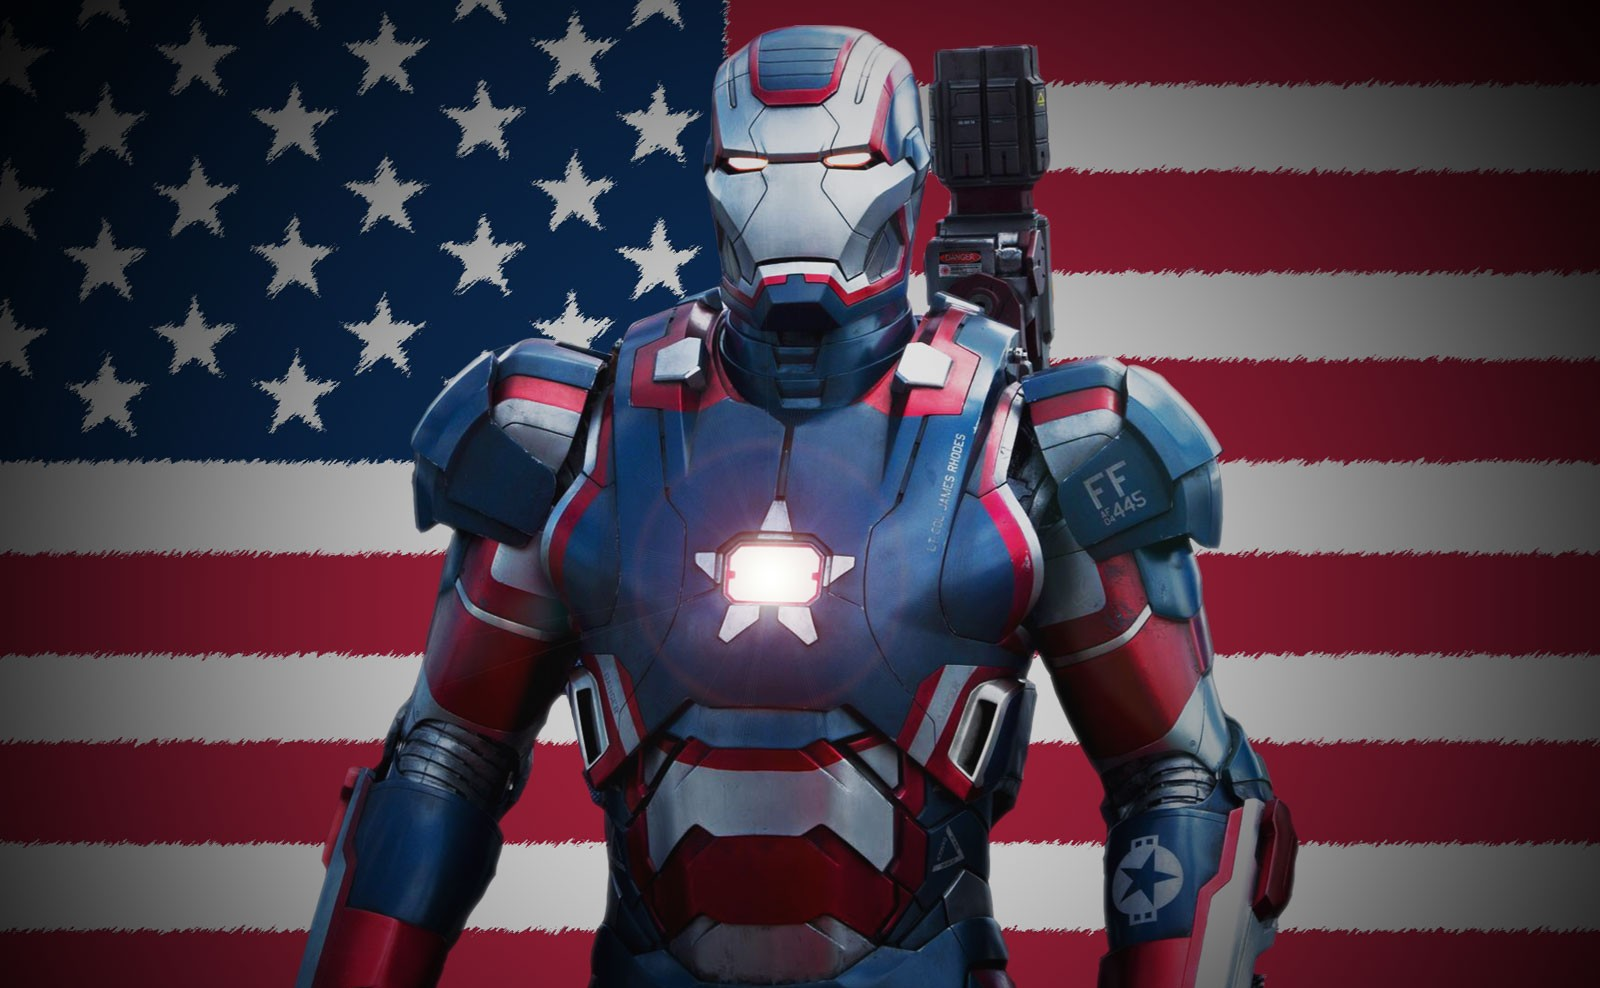 The U.S. military is building Iron Man suits